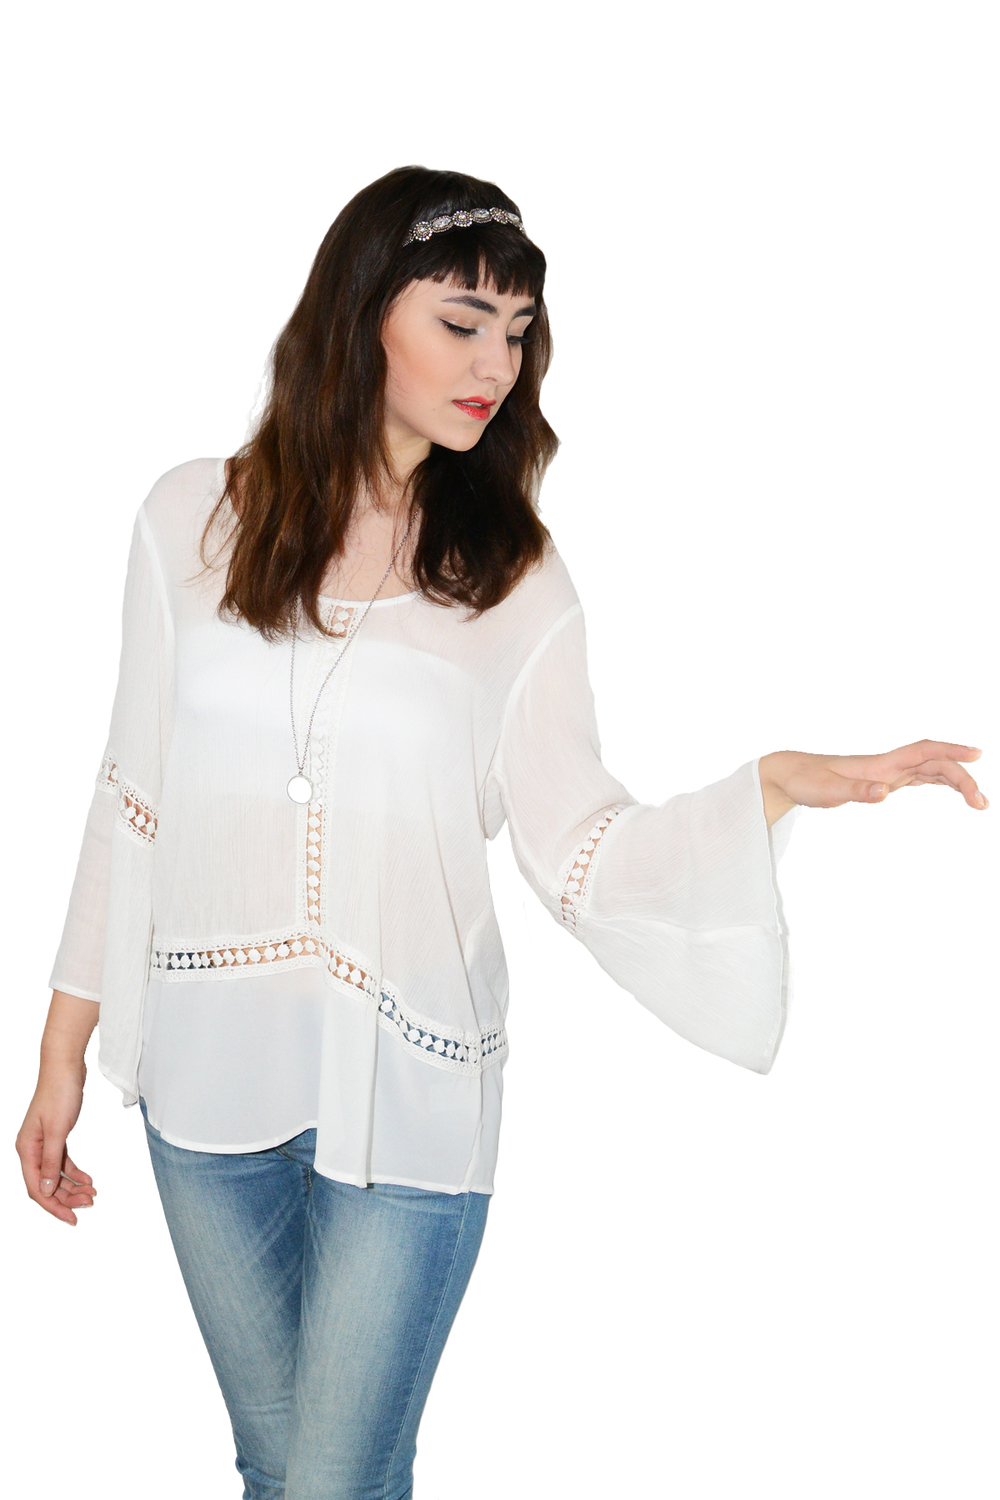 Crinkle gauze peasant top with bell sleeve — simply chic